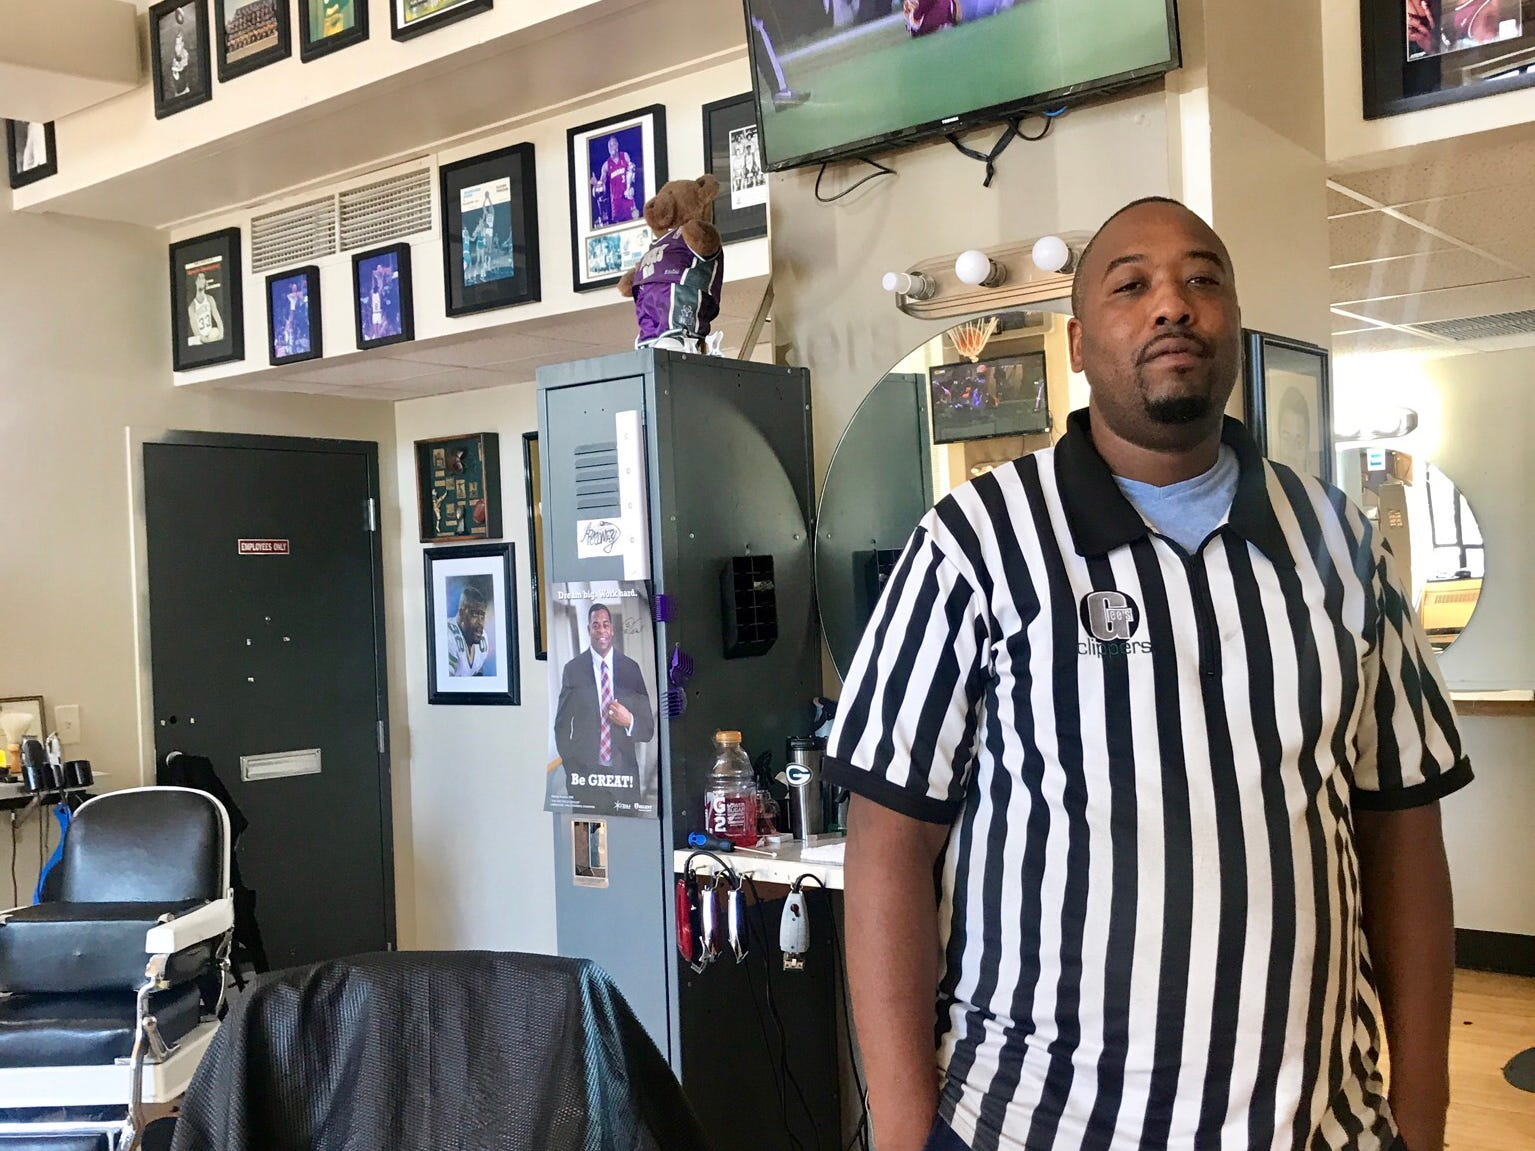 James Flippin is a barber at Gee's Clippers on North King Drive. The area was a spotlight neighborhood in the annual Doors Open Milwaukee event.